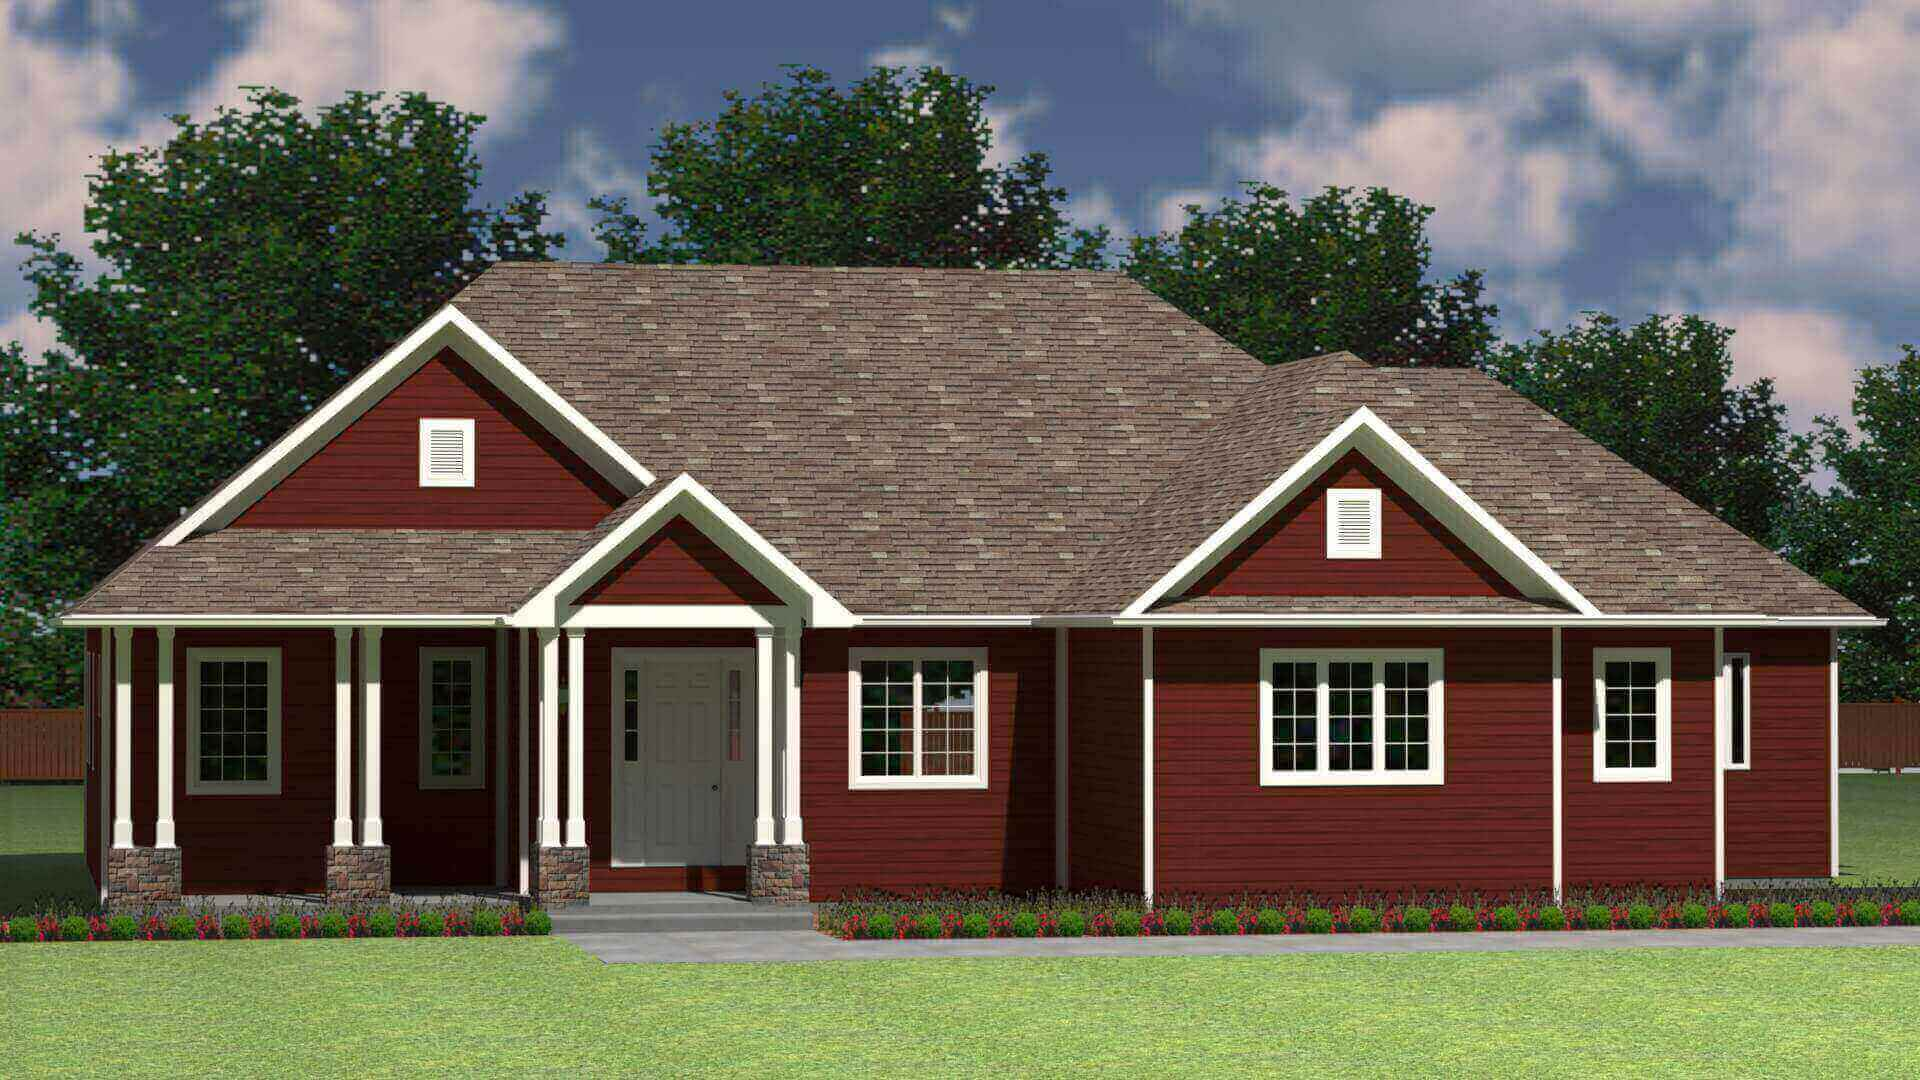 2317 sq.ft. timber mart house 3 bed 2 bath exterior render